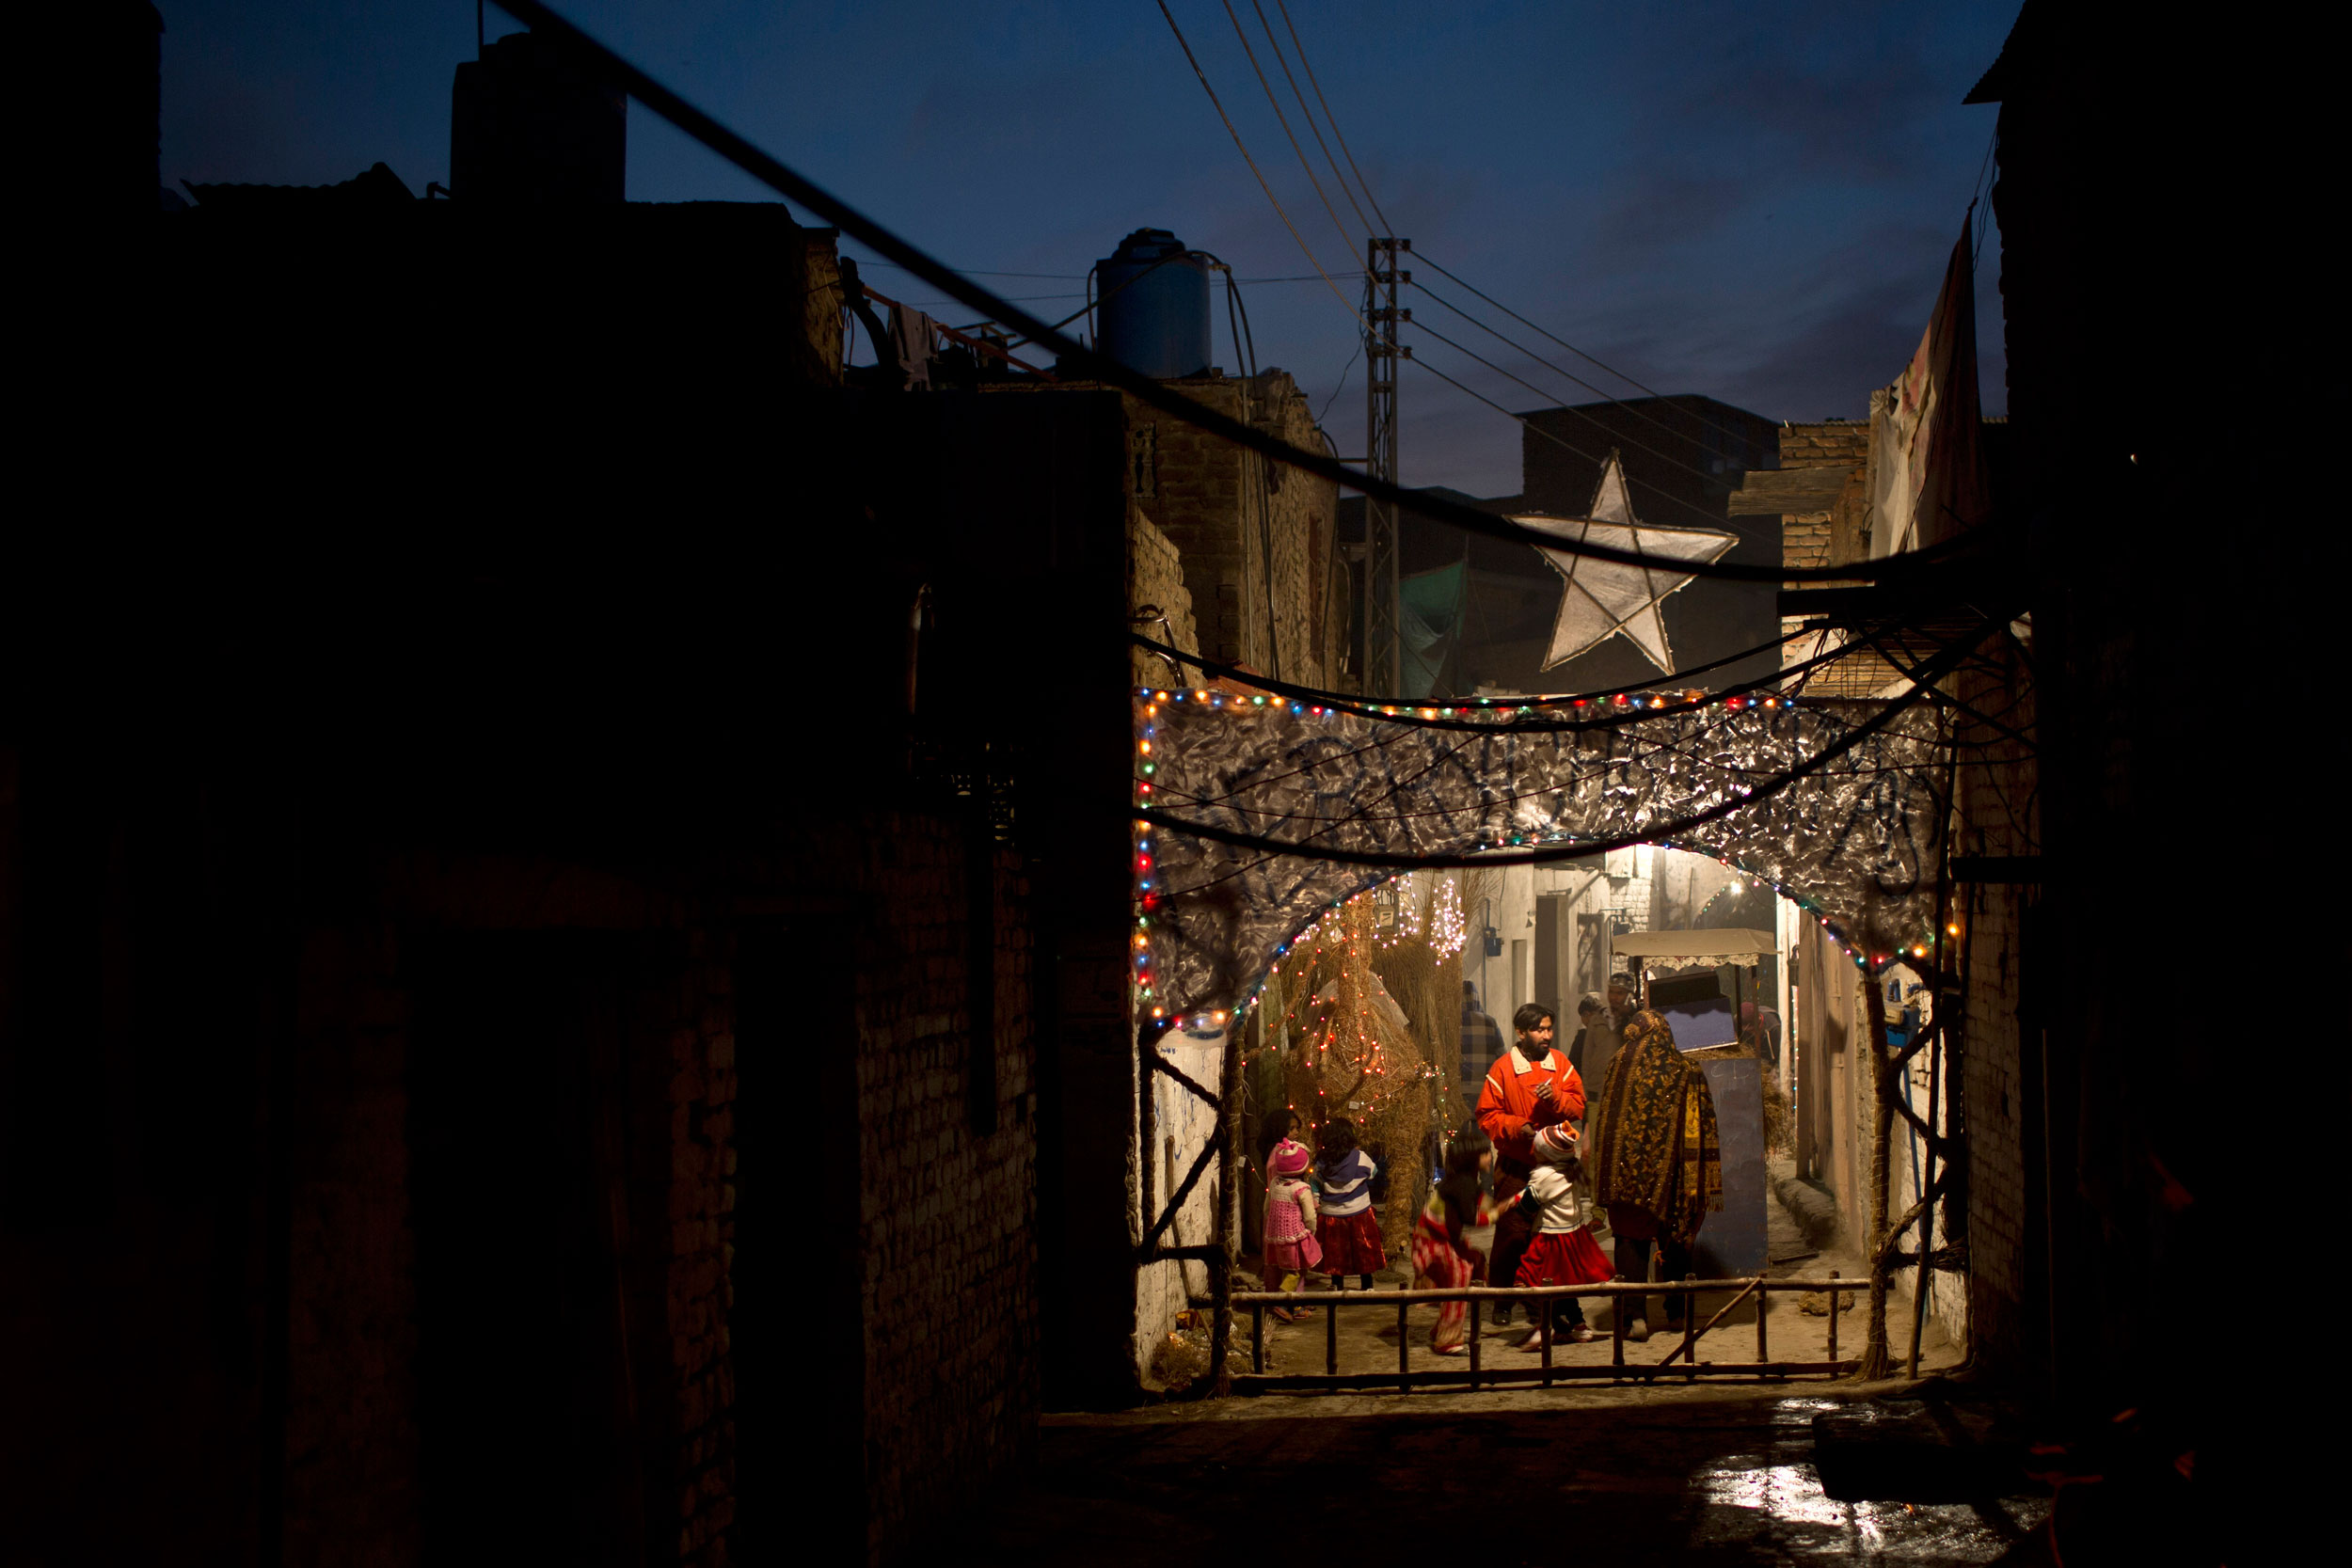 Pakistani Christians gather in an alley of a Christian neighborhood decorated with festive lights for Christmas in Islamabad, Pakistan on Dec. 24, 2014.